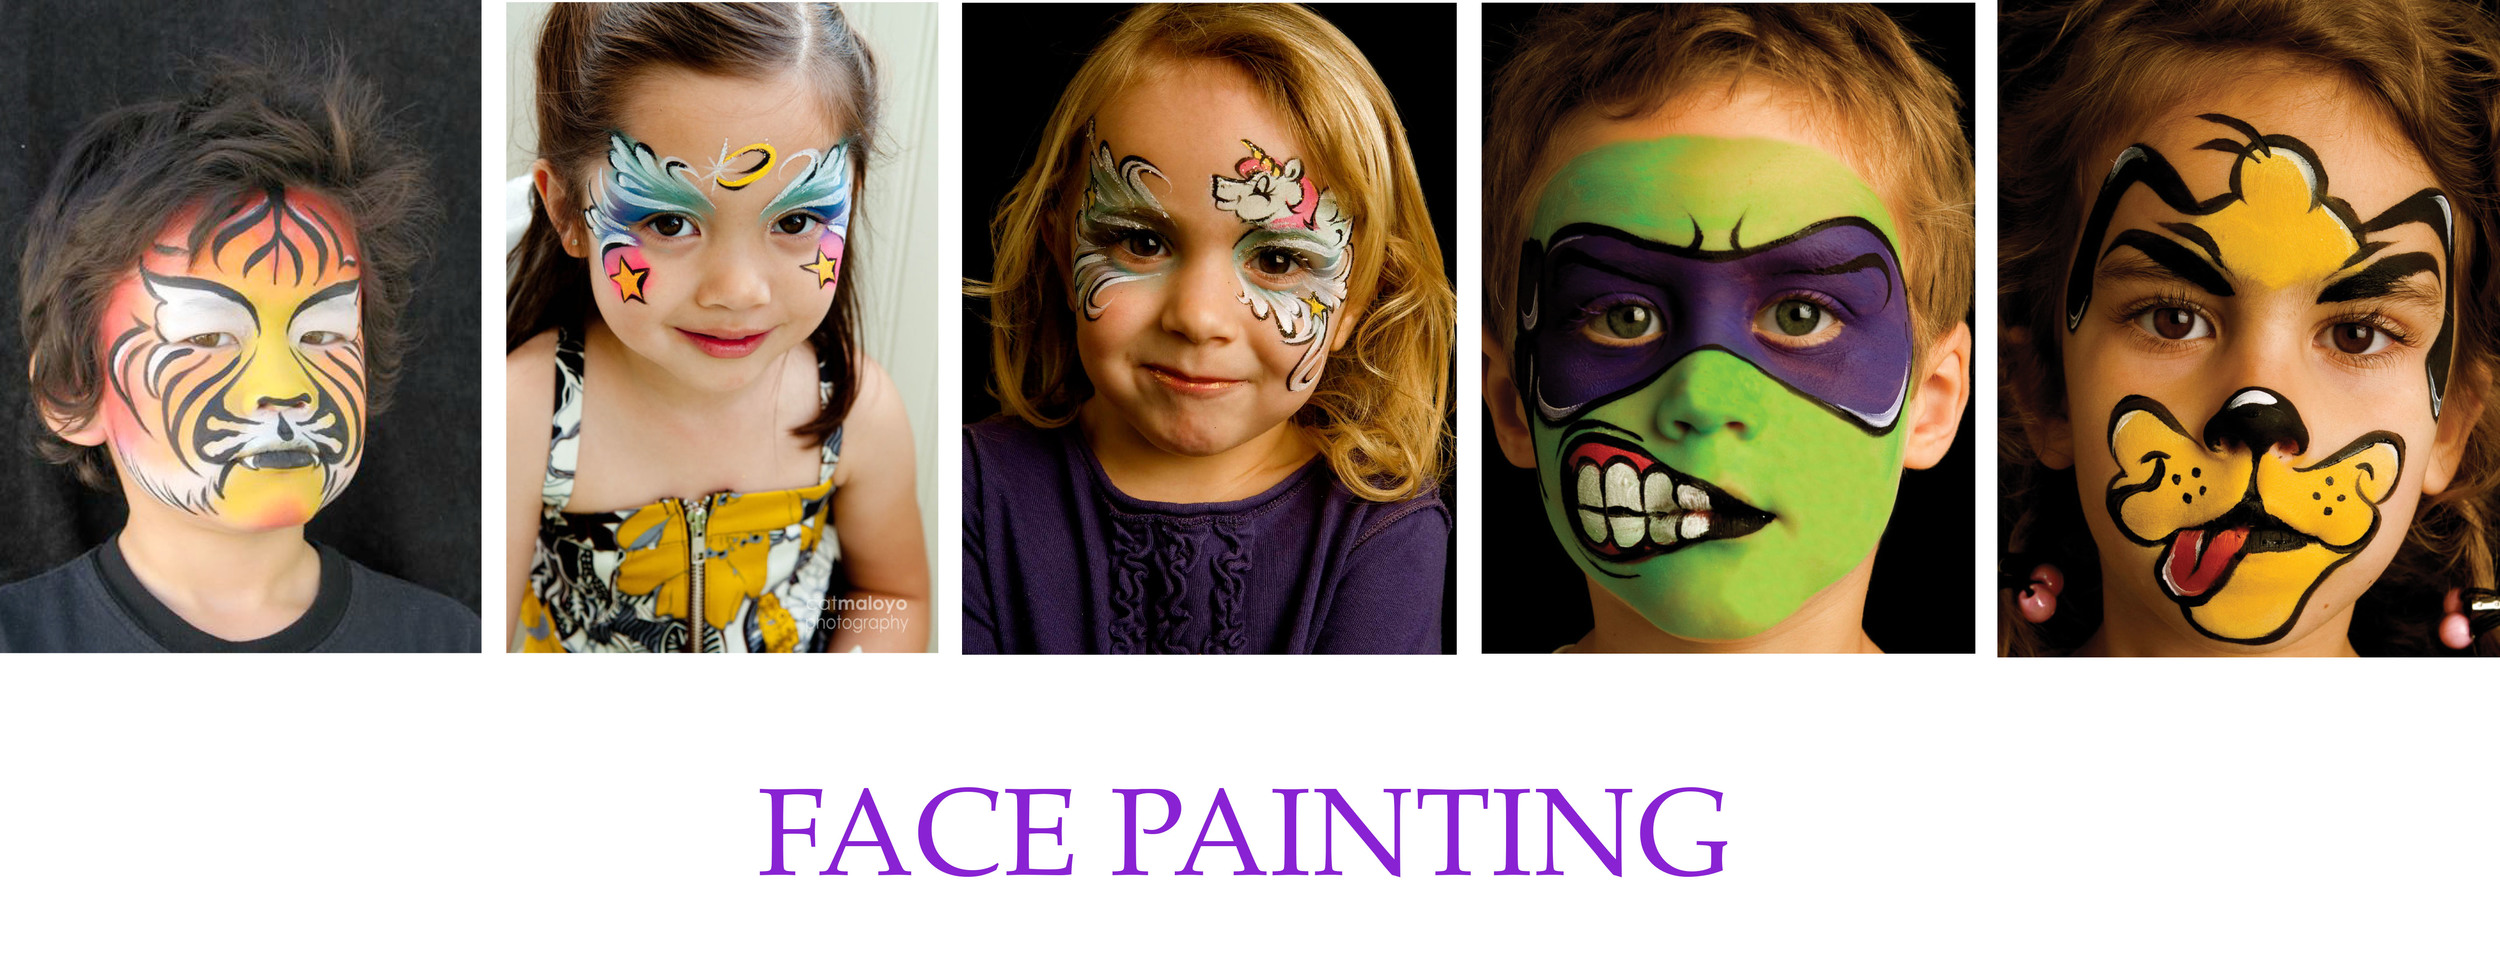 Face Painting We Adorn You.jpg